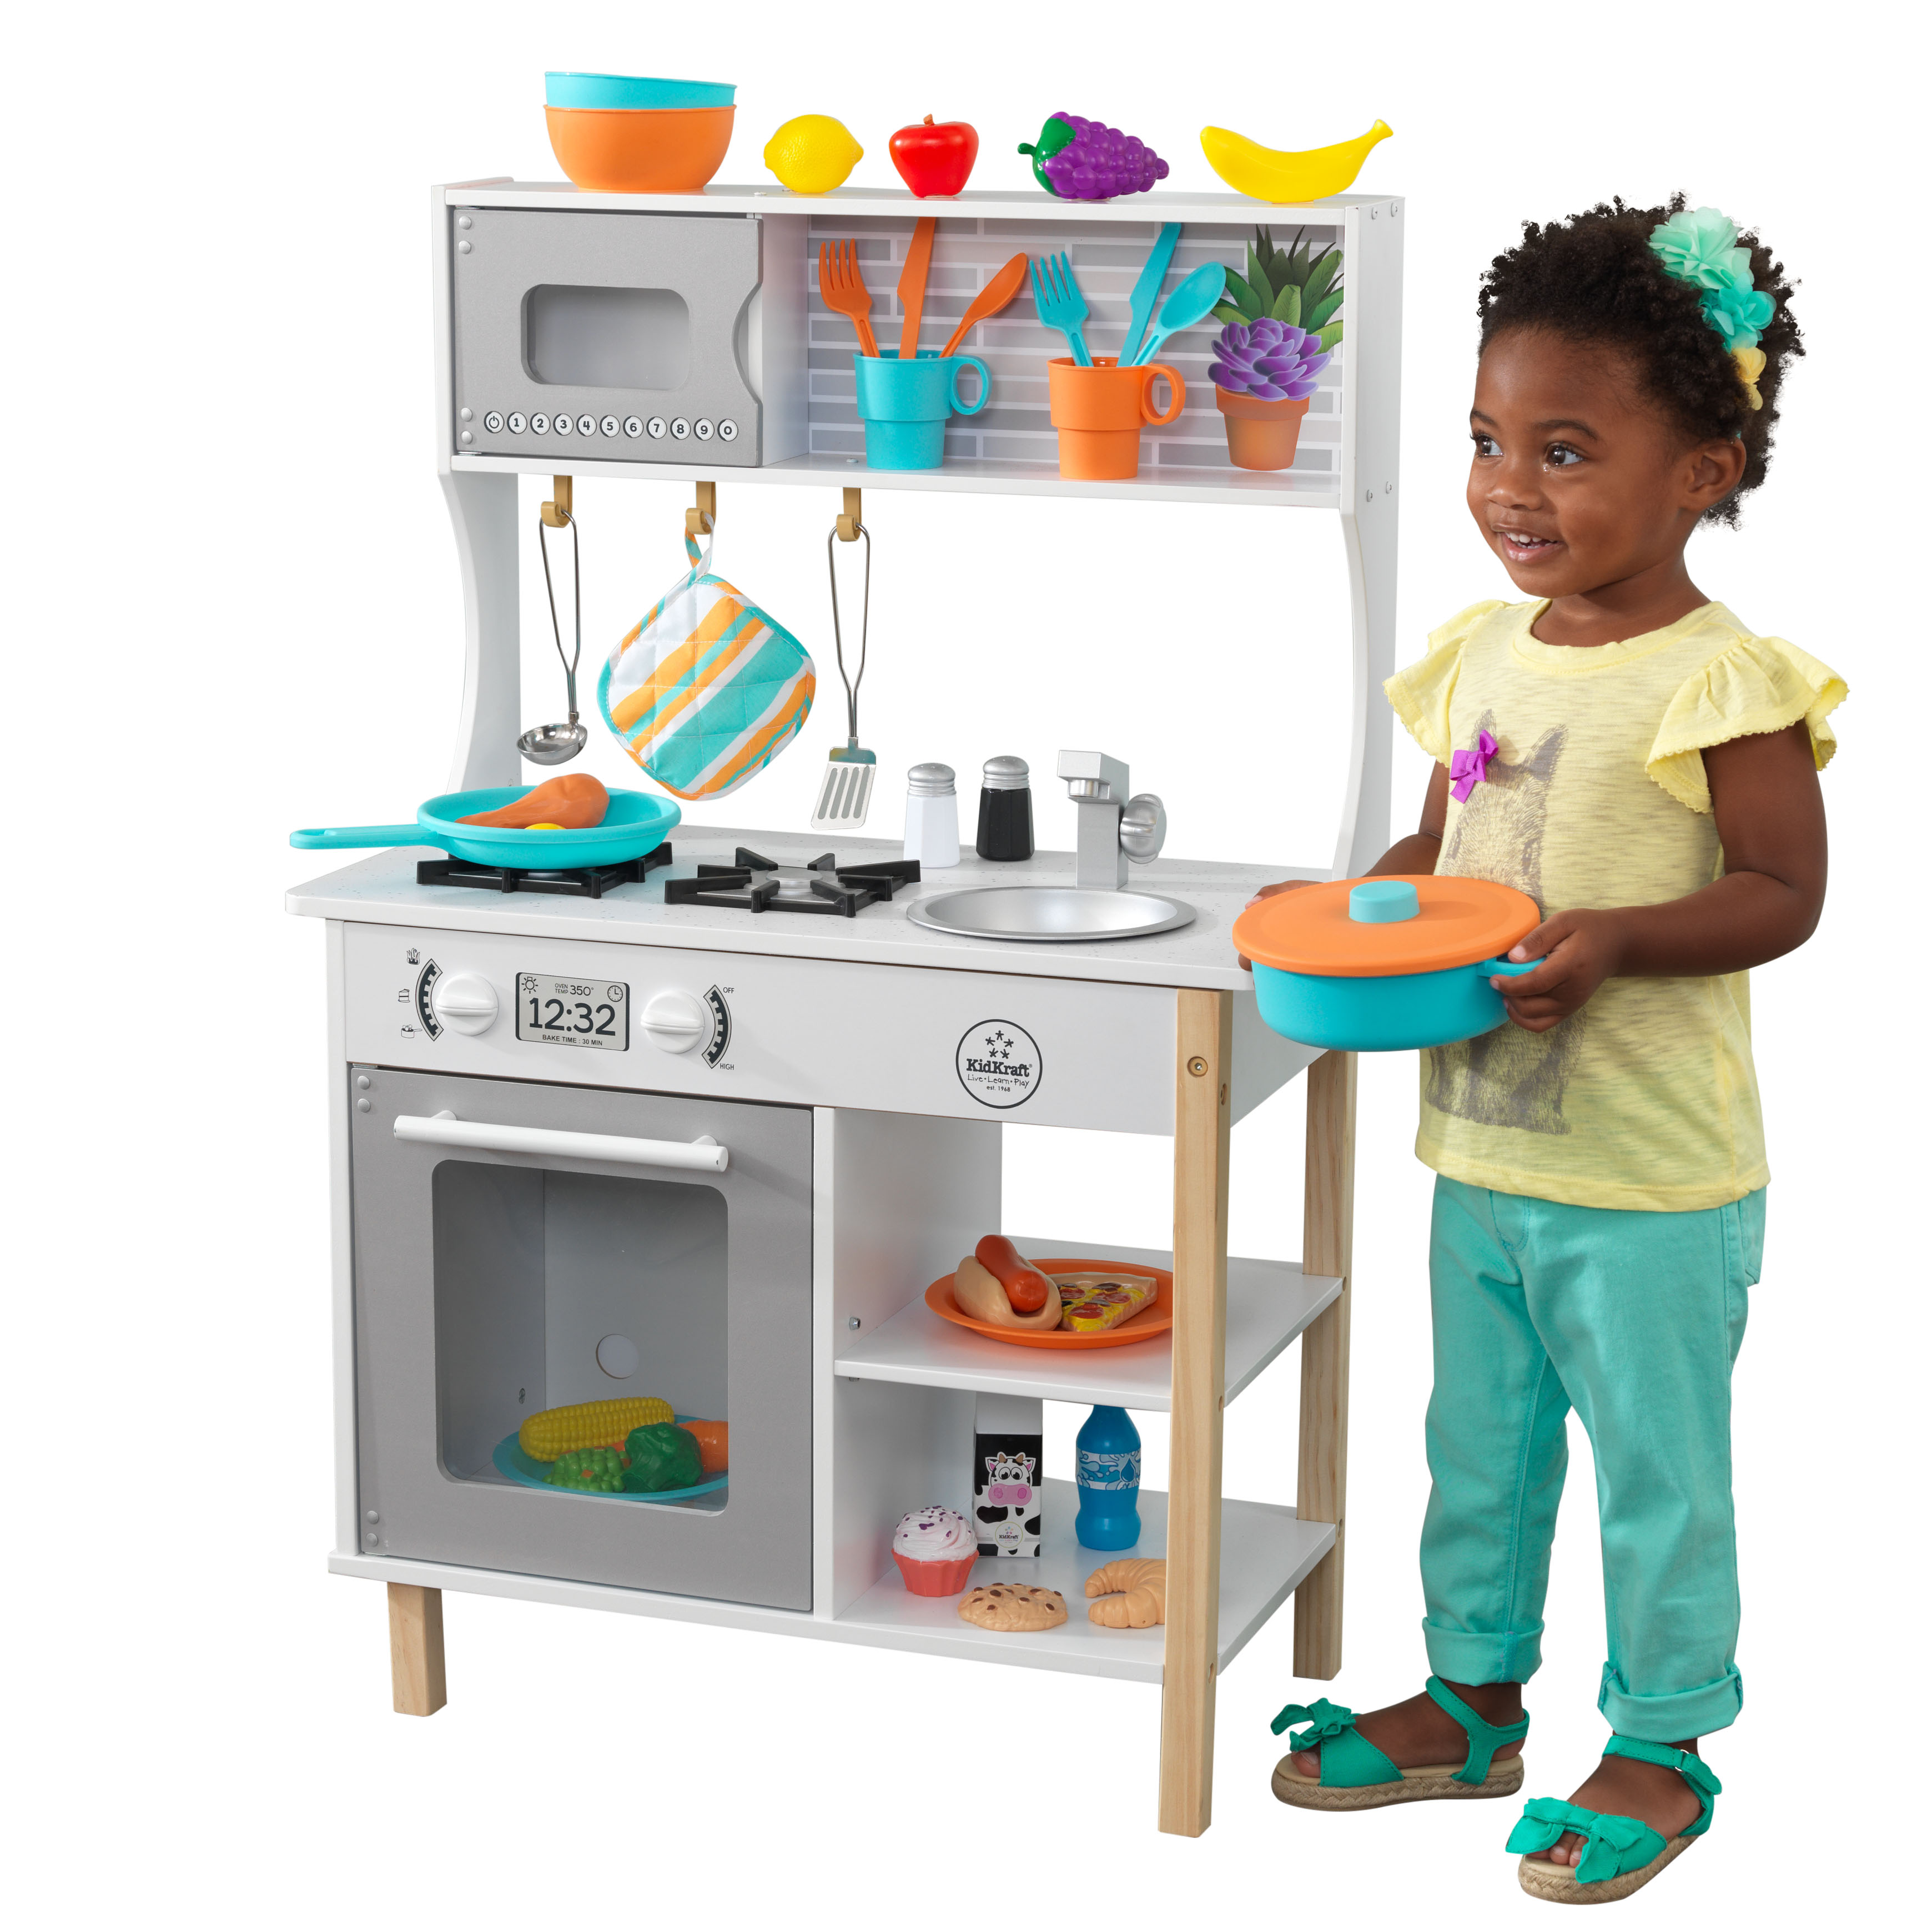 KidKraft All Time Play Kitchen with Accessories | eBay